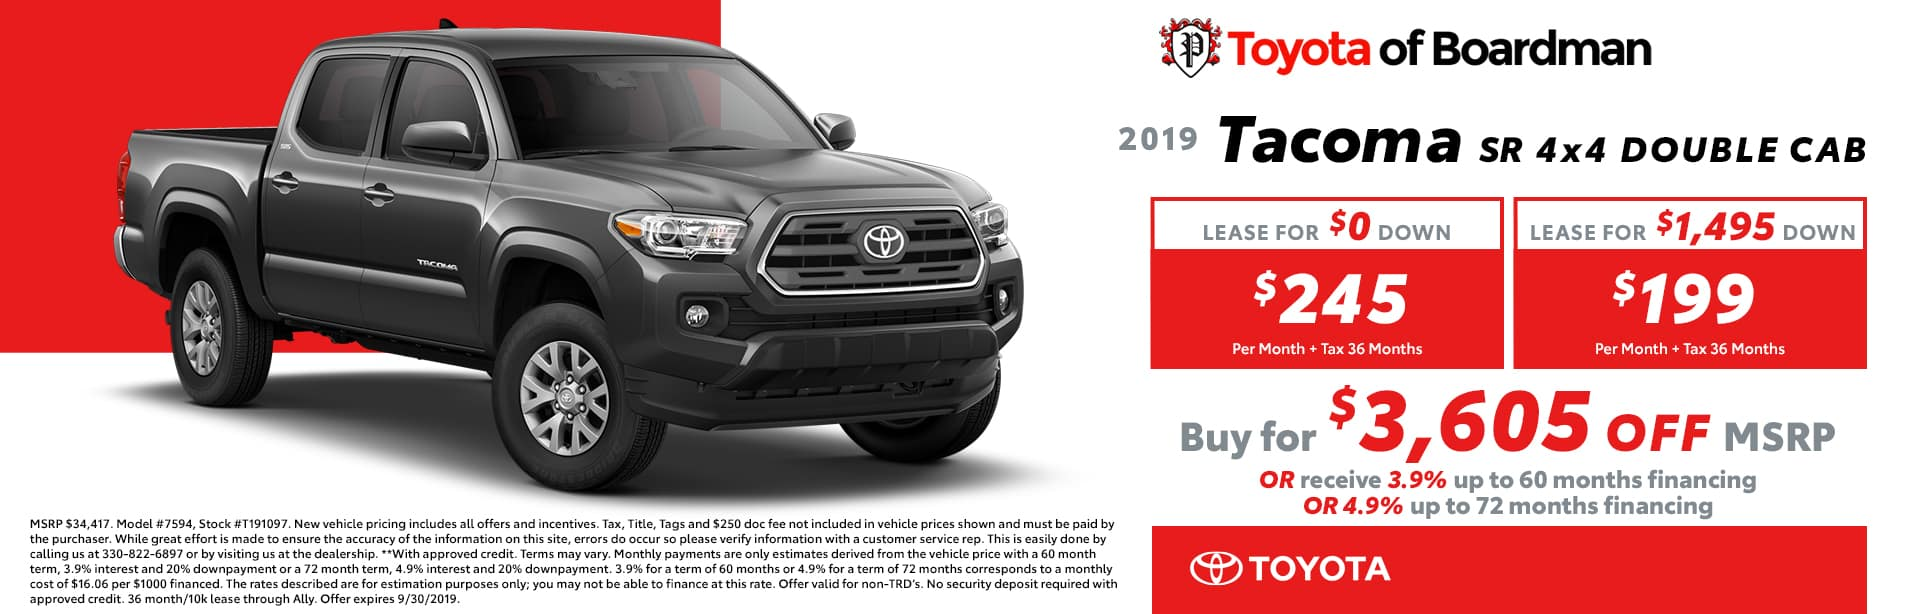 September special on the 2019 Toyota Tacoma